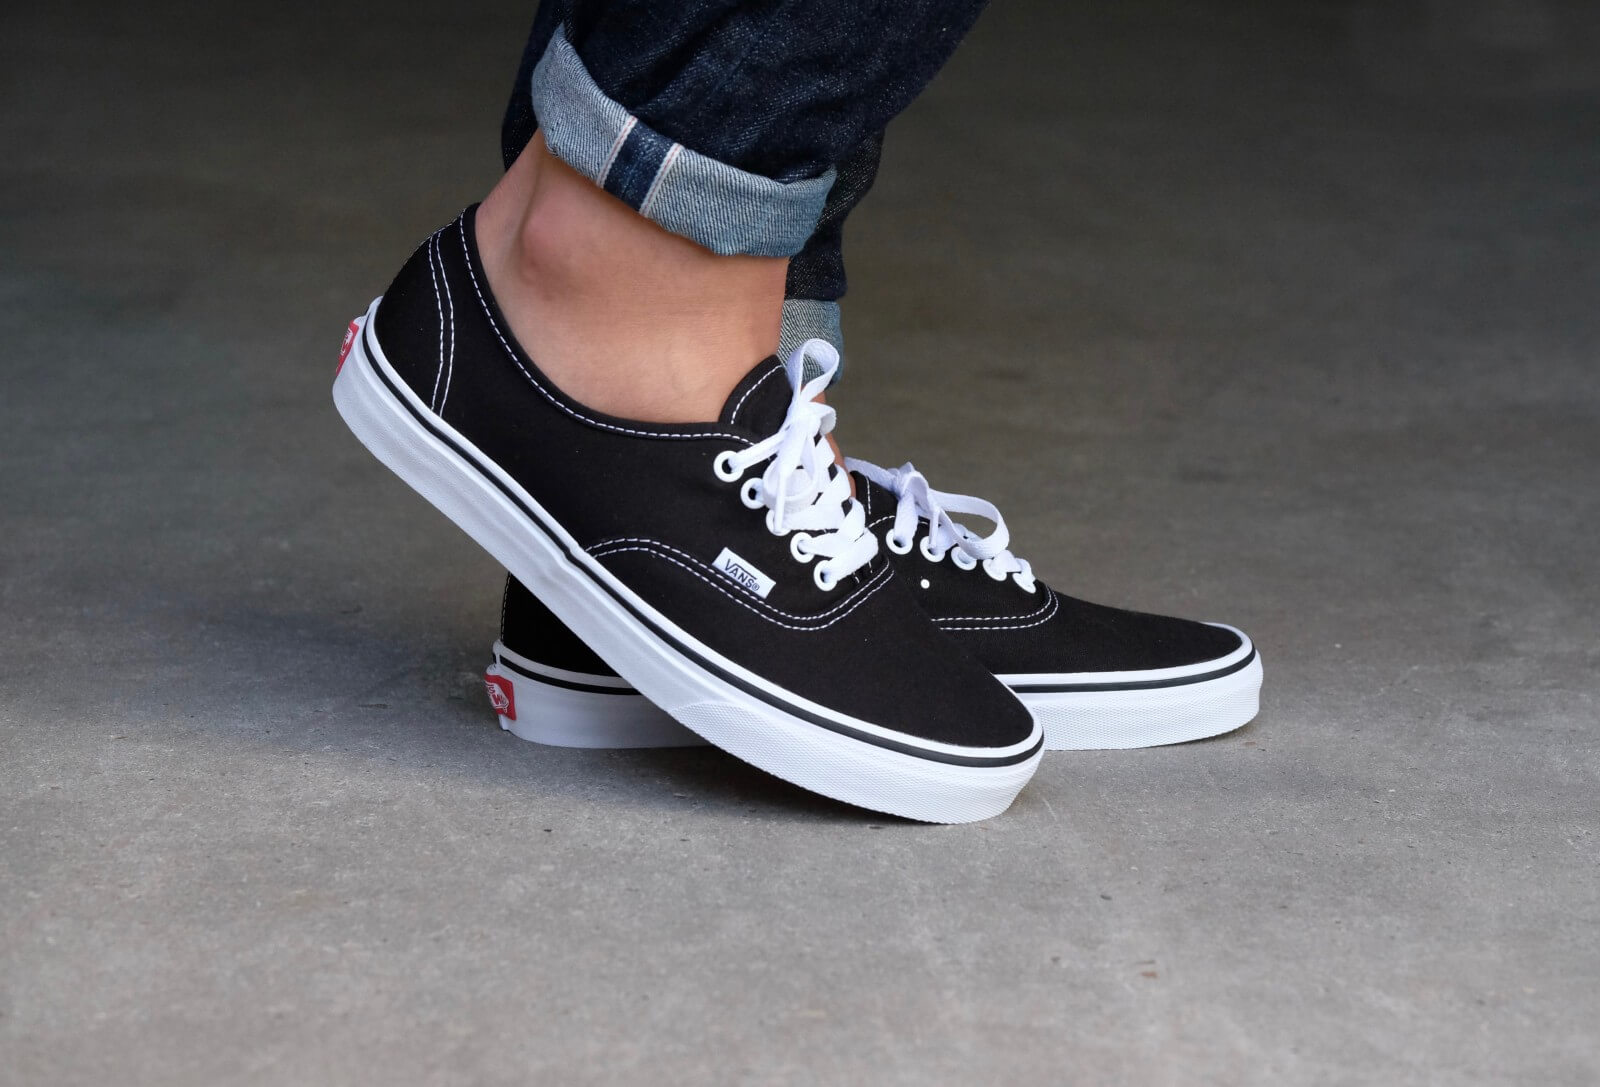 d504e5eca2d0 10 Best Vans Shoes Reviewed   Rated in 2019